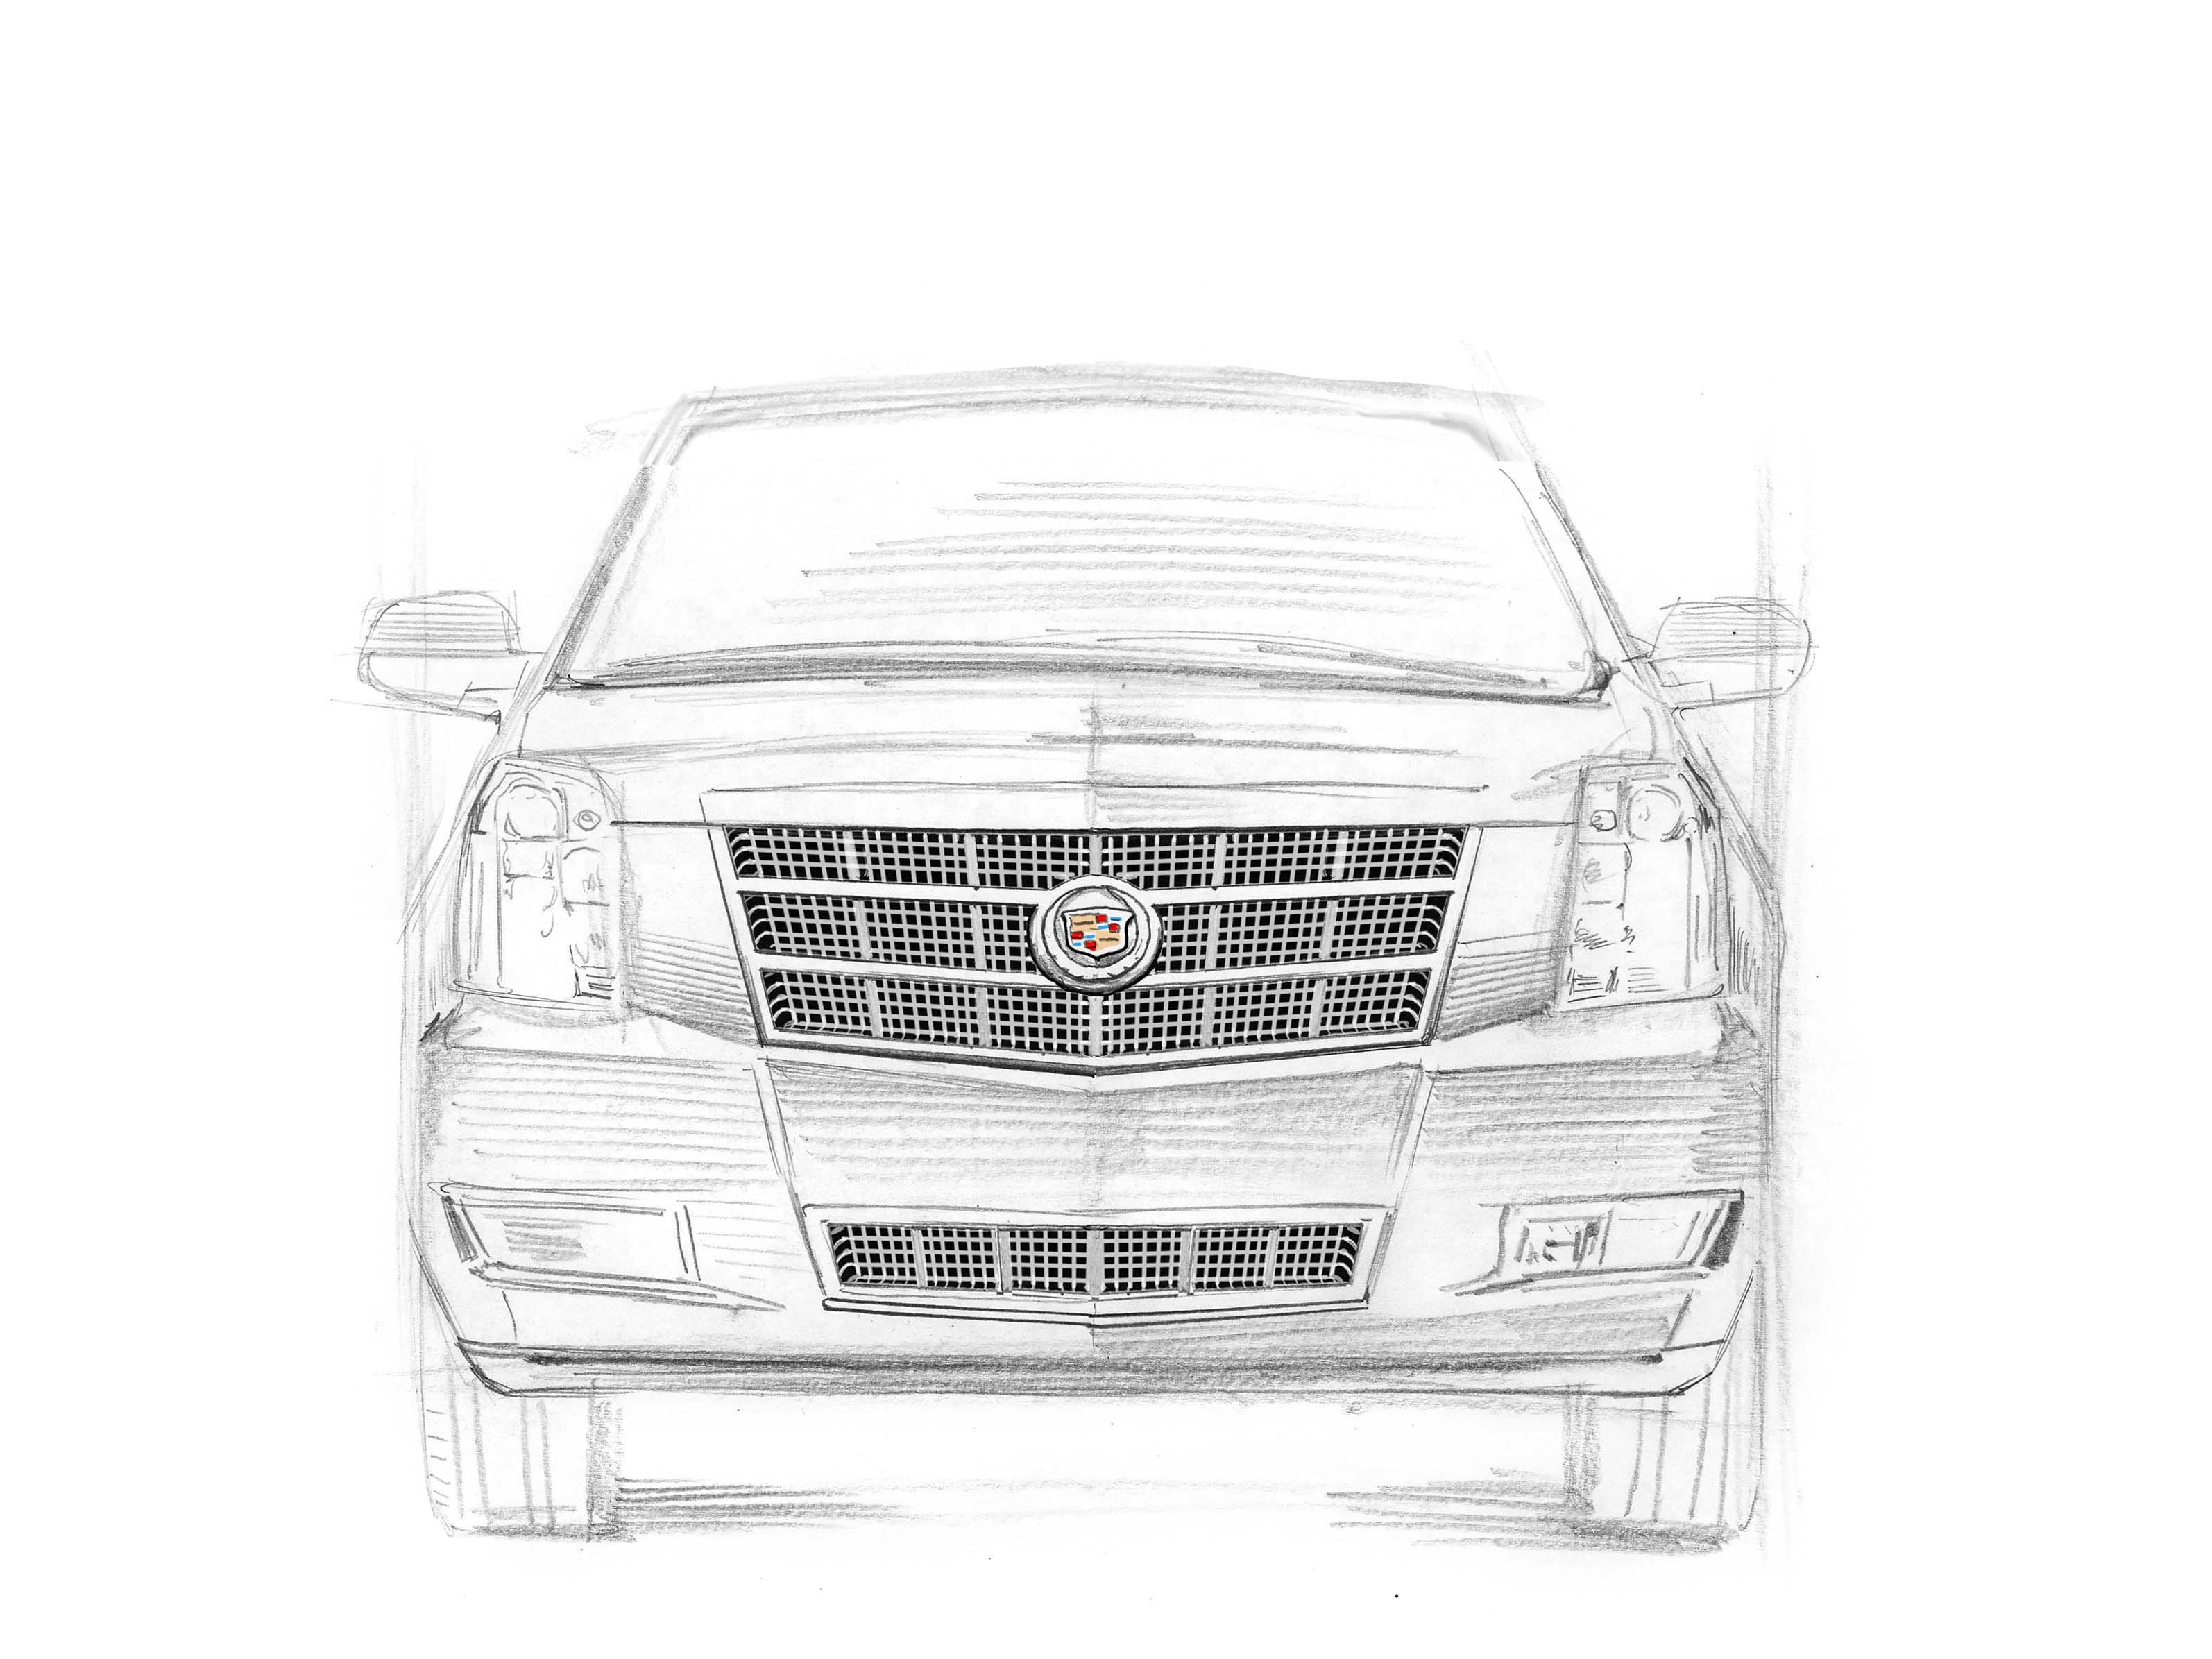 Cadillac Escalade Gen 3, 2007-2014: Beyond its iconic styling, the Escalade pioneered tech like smooth-riding magnetic shocks in the large SUV segment. 20th anniversary Escalade sketch drawn by award-winning illustrator Joe McKendry.